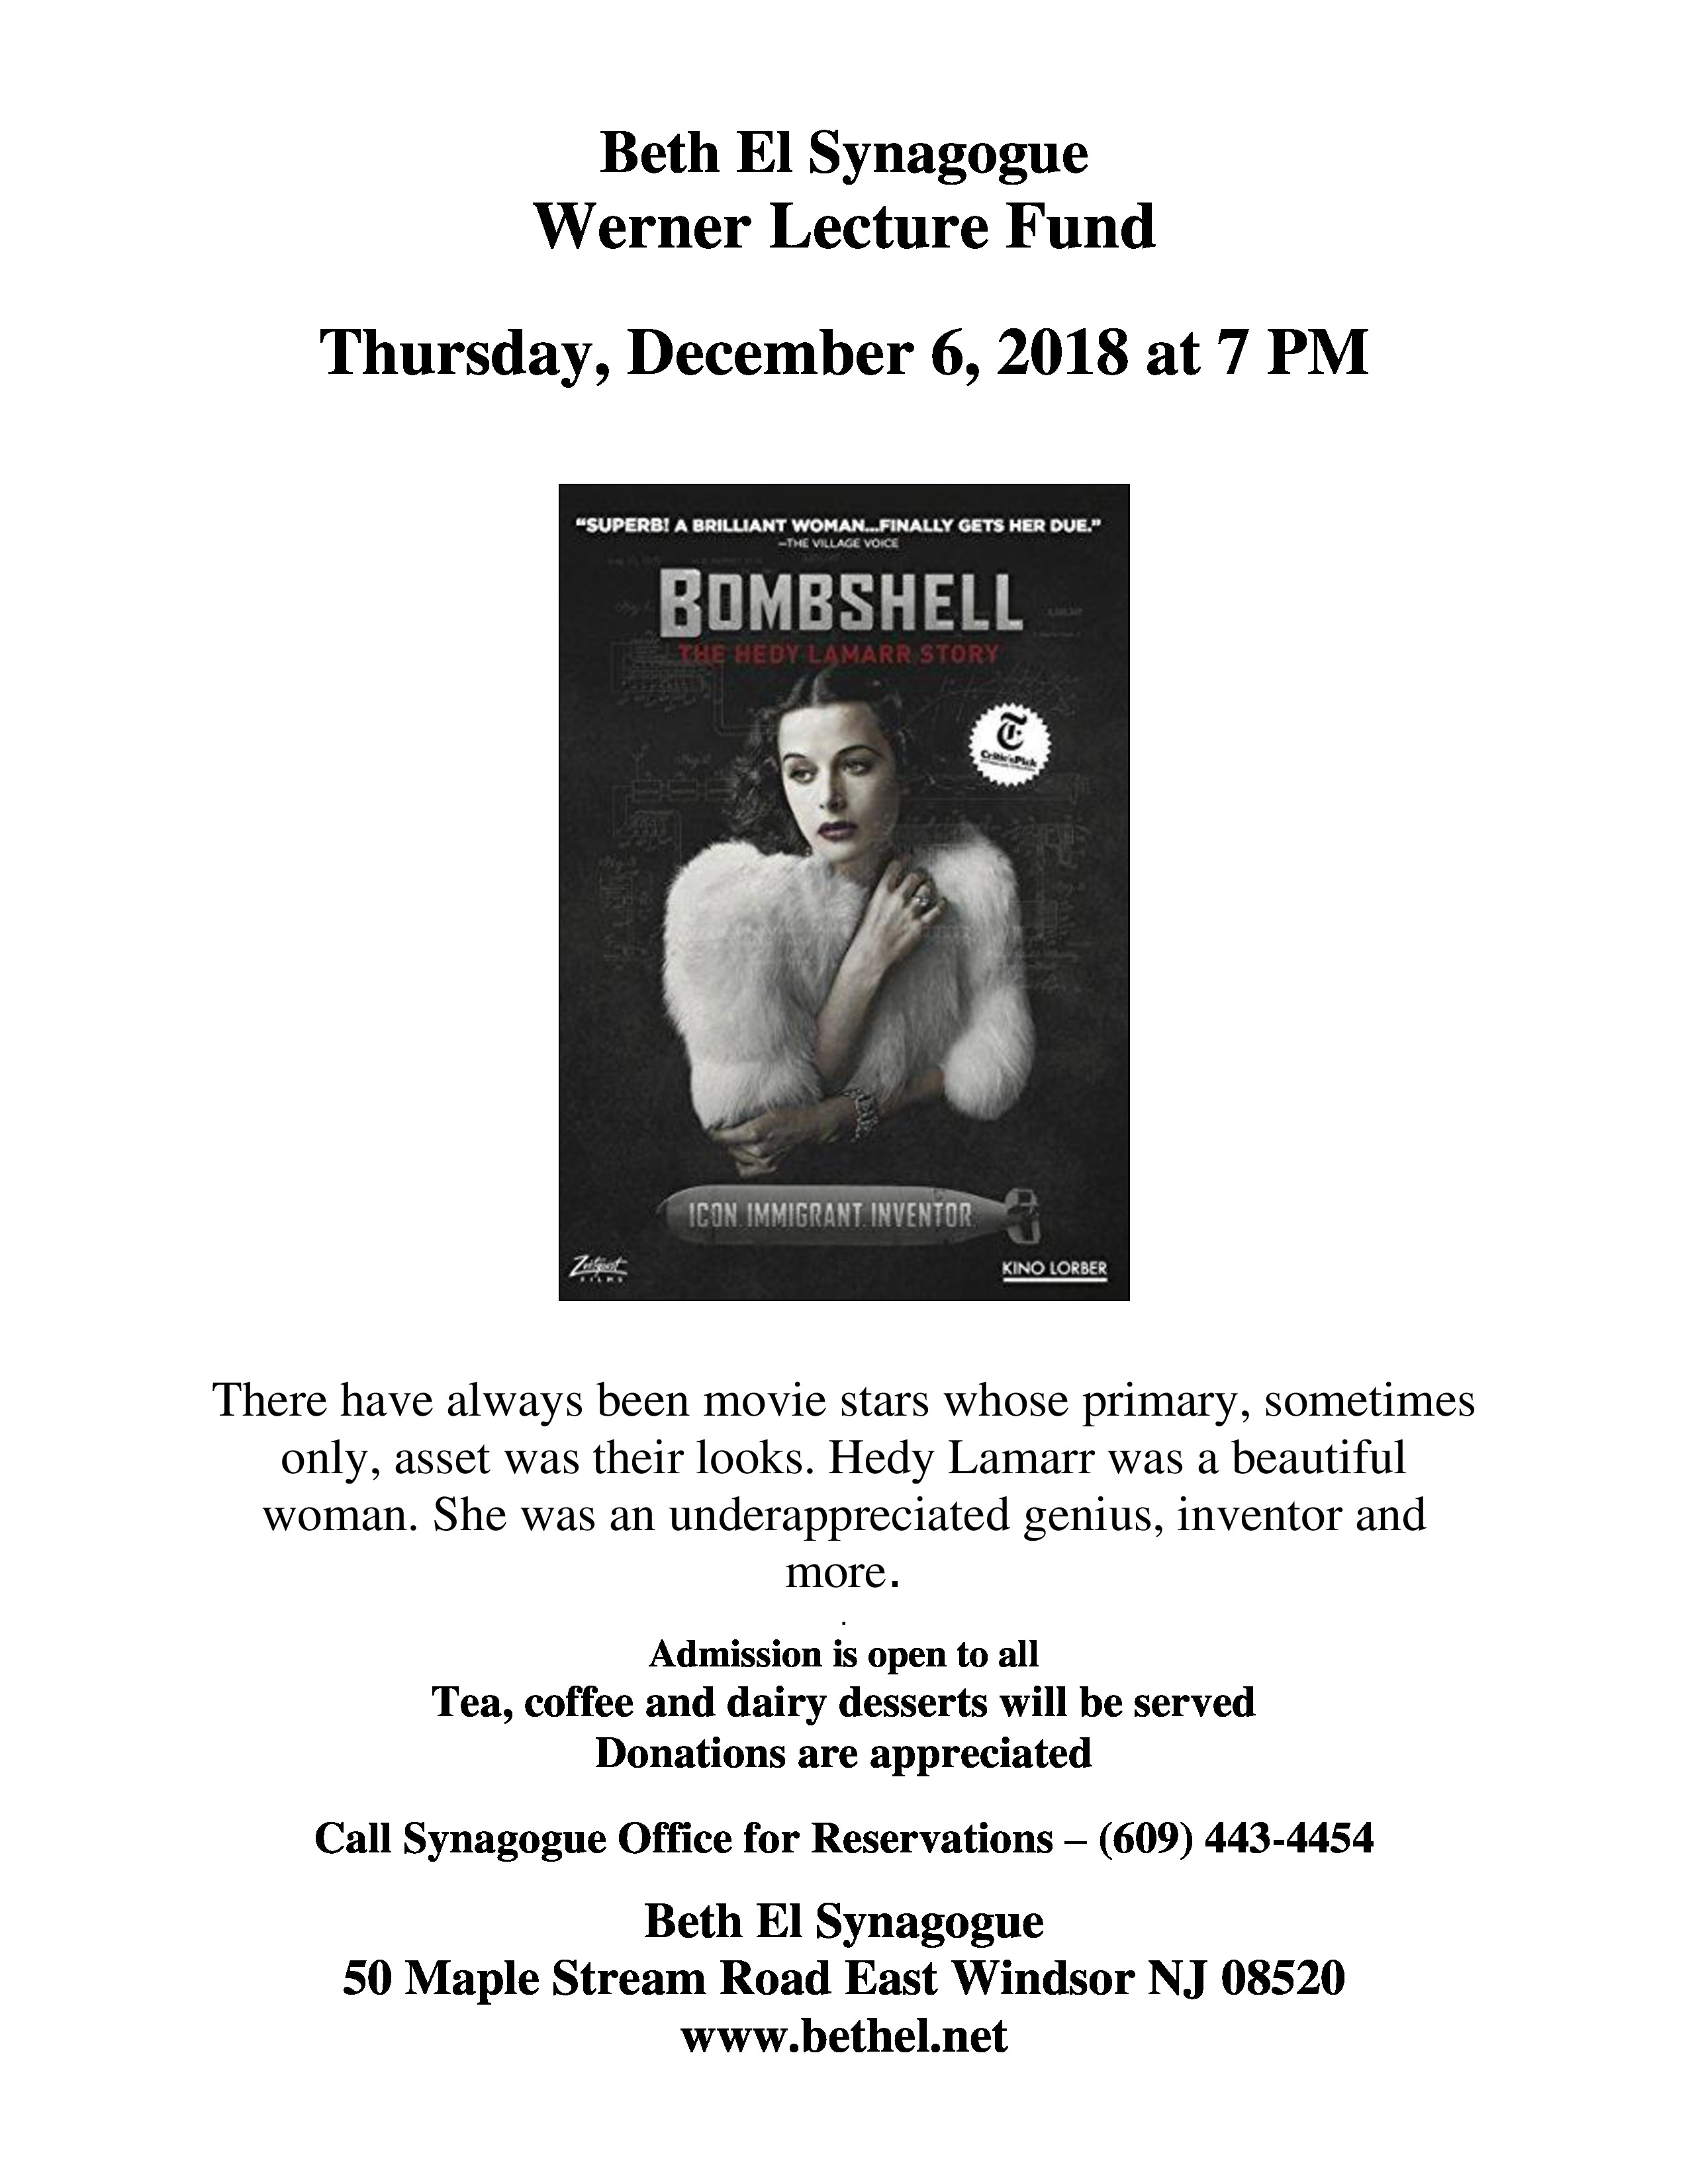 12.6.18.-Werner-Bombshell